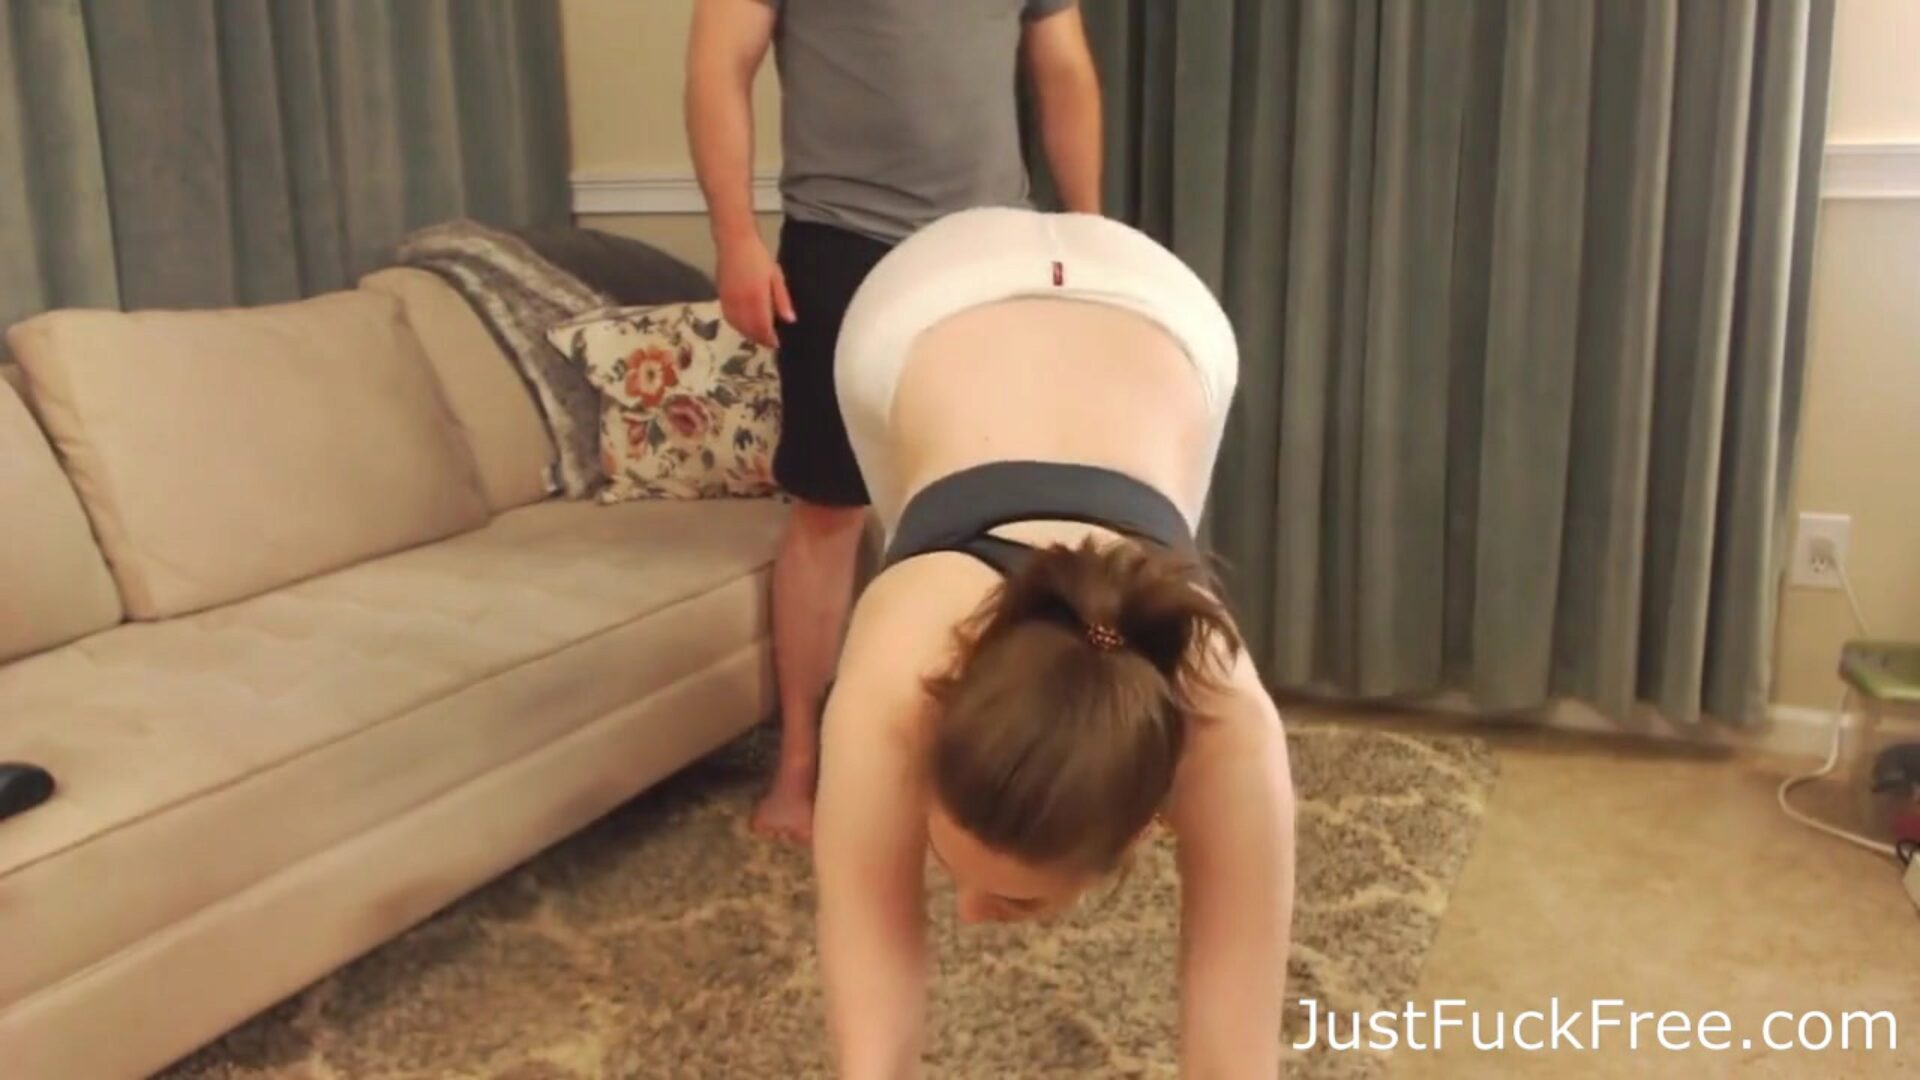 Horny Teen Gets Fucked By Her Personal Trainer